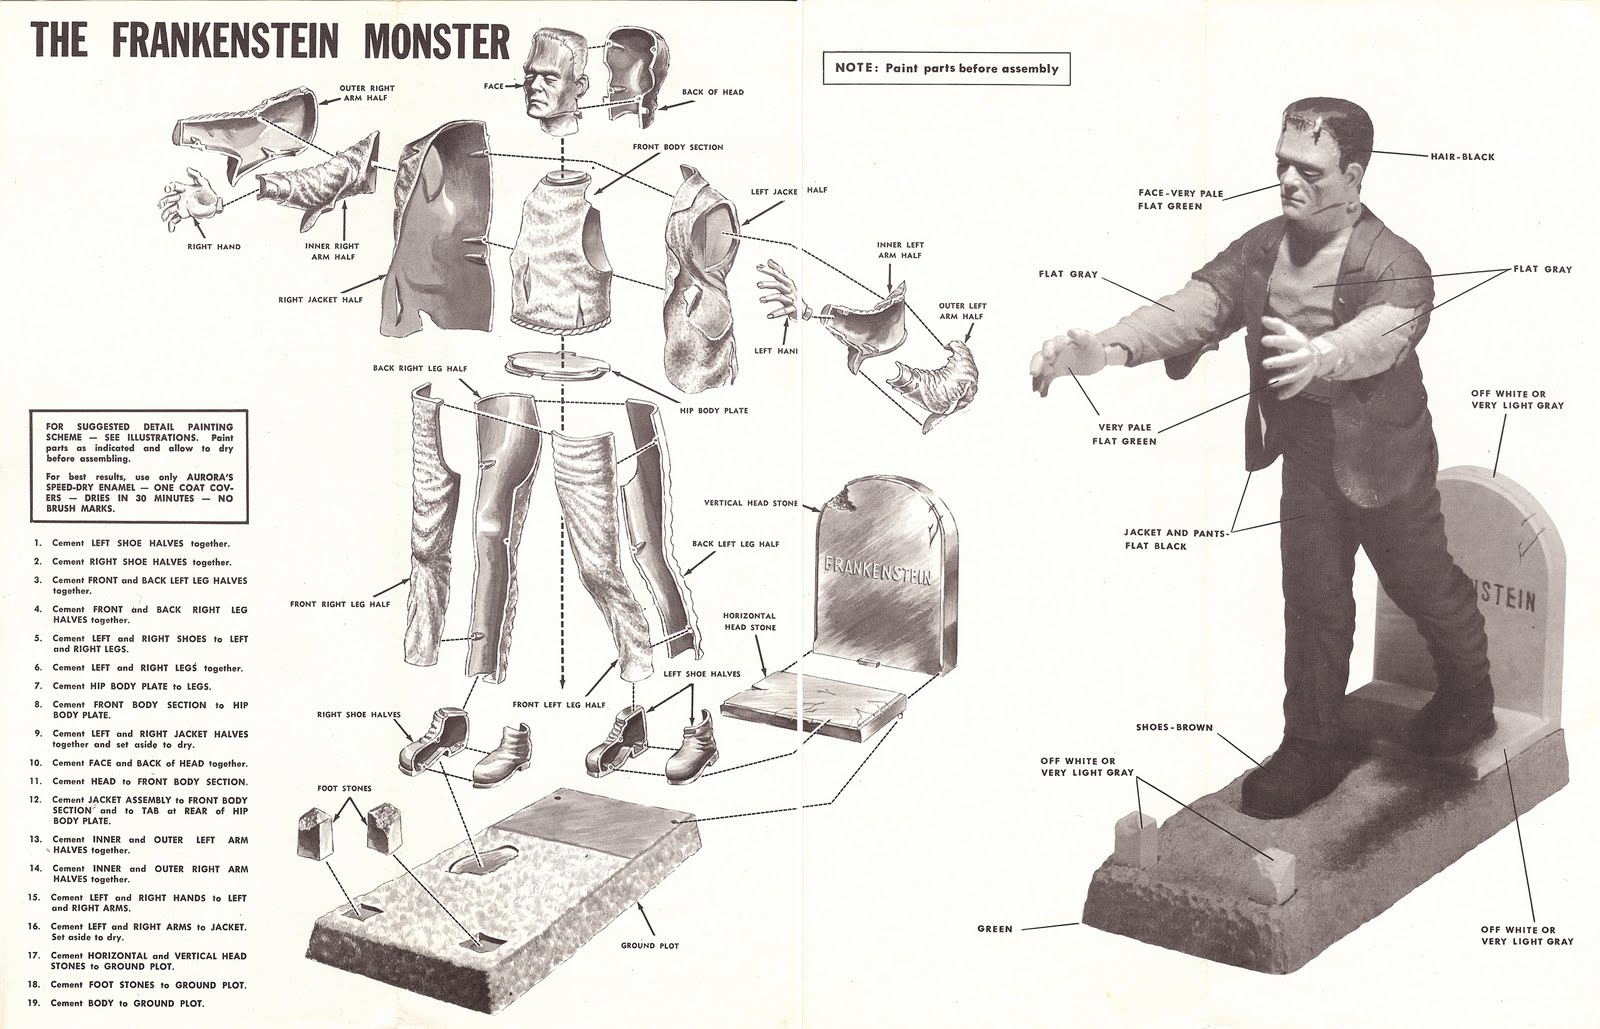 gilles monster or victim essay Is the monster in mary shelley's frankenstein good or evil i have to write an essay with this as a title i'm finding this novel hard to get into and only have a few days until deadline.